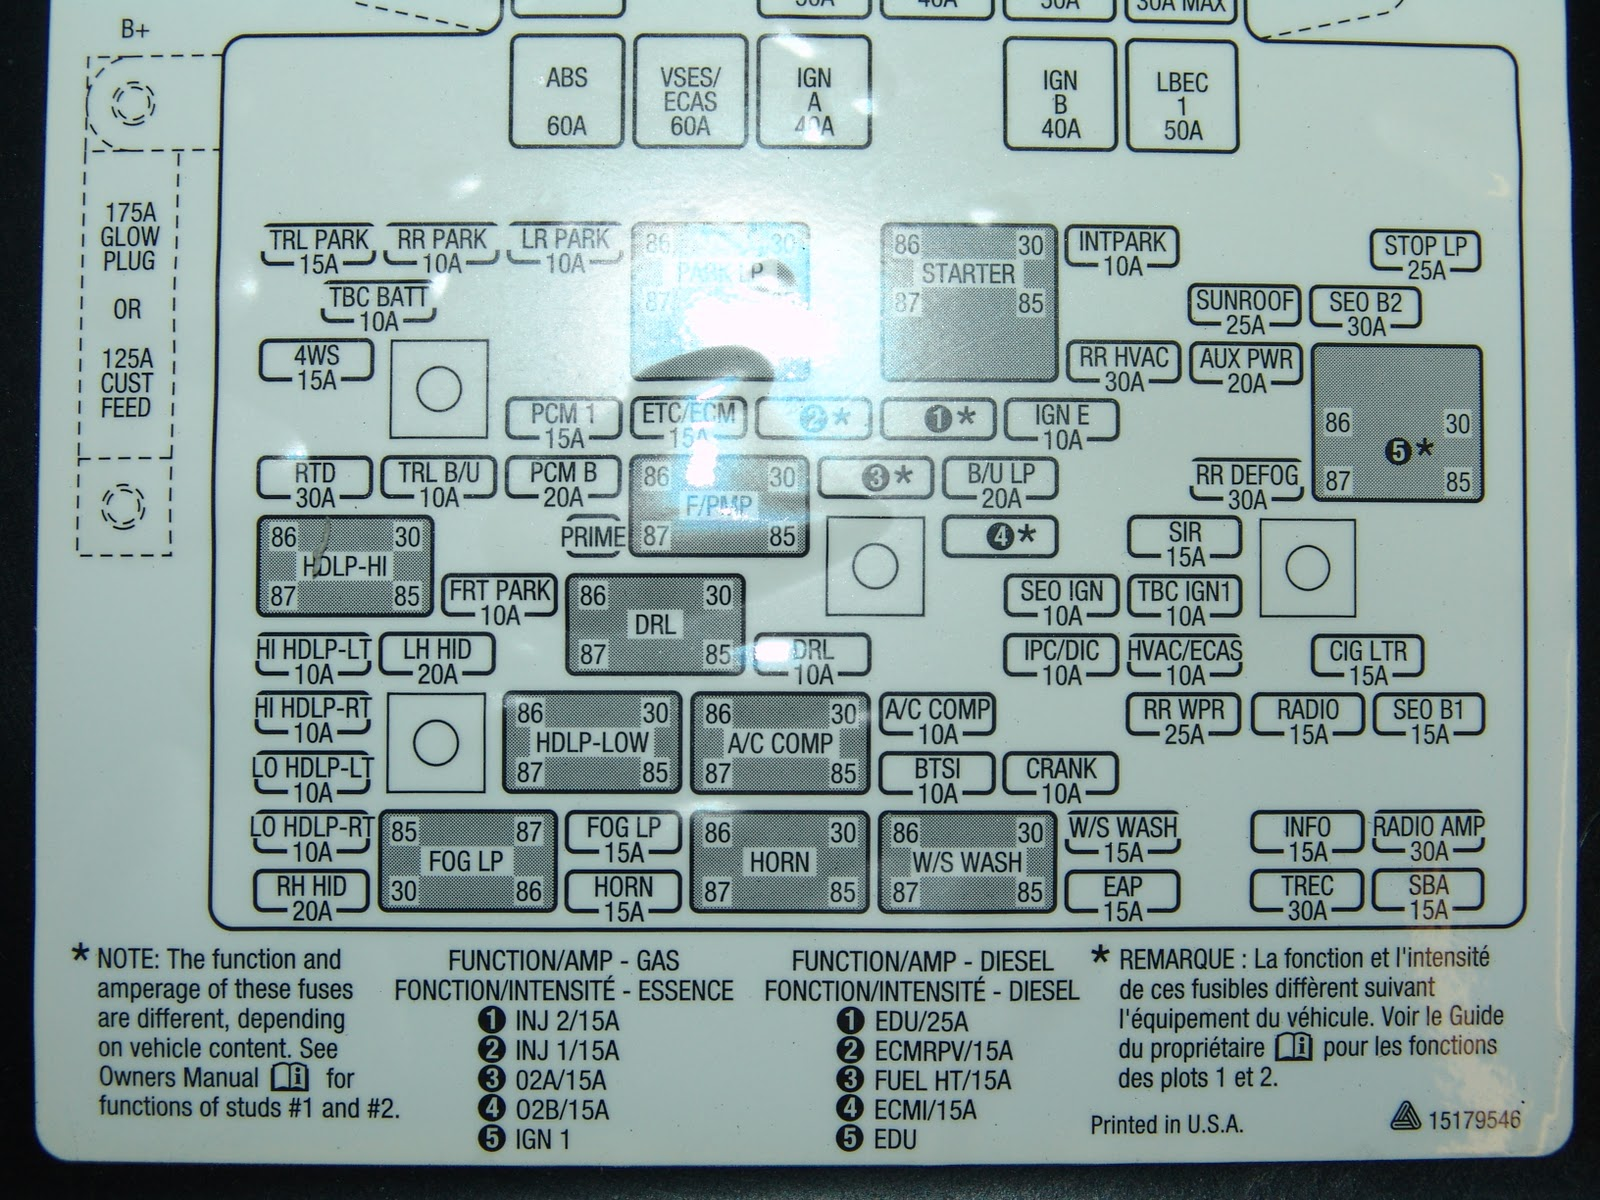 2006 Kenworth Fuse Box Diagram 2006 kenworth t600 fuse panel ... on kenworth w900 fuse box, kenworth t370 fuse box, kenworth t2000 fuse box, international 4900 fuse box, kenworth t800 fuse box, freightliner cascadia fuse box,